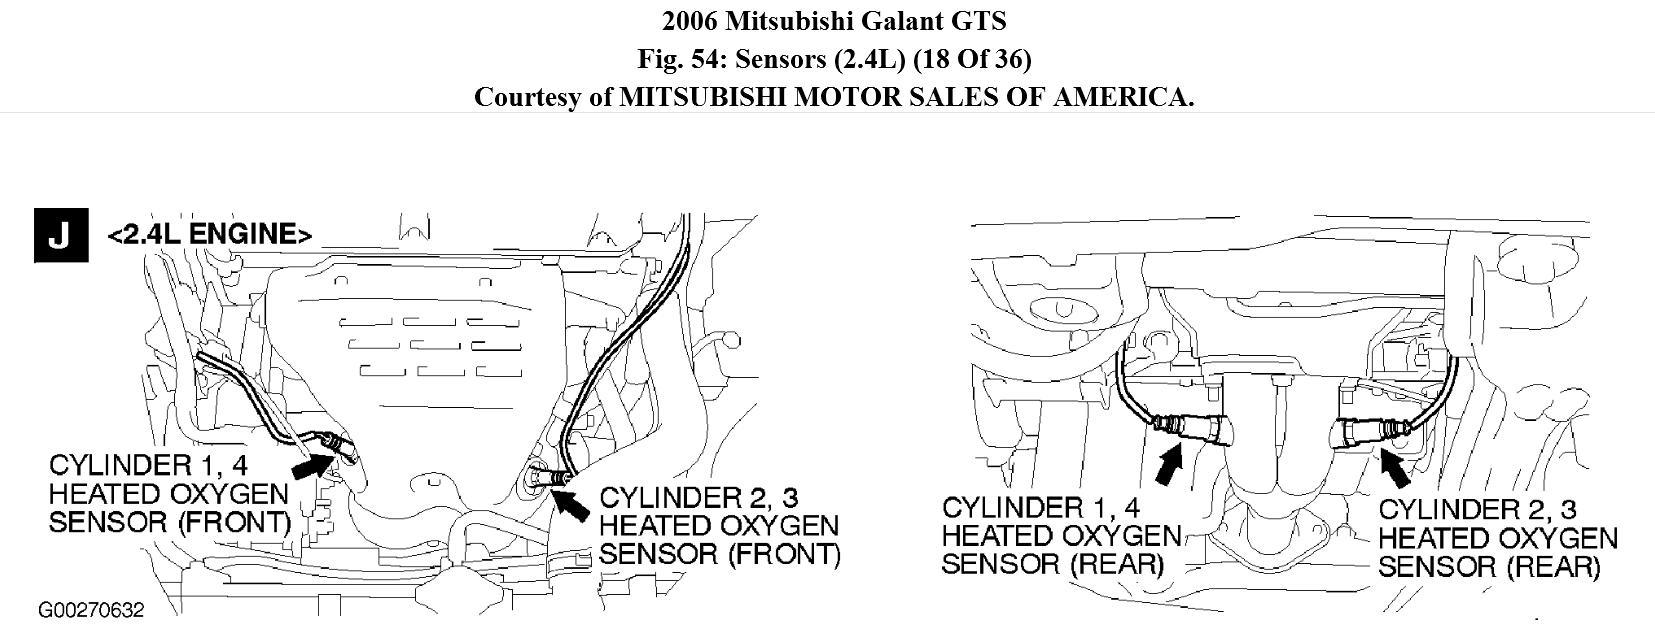 2006 Mitsubishi Galant Code P0421: Car Has Check Engine